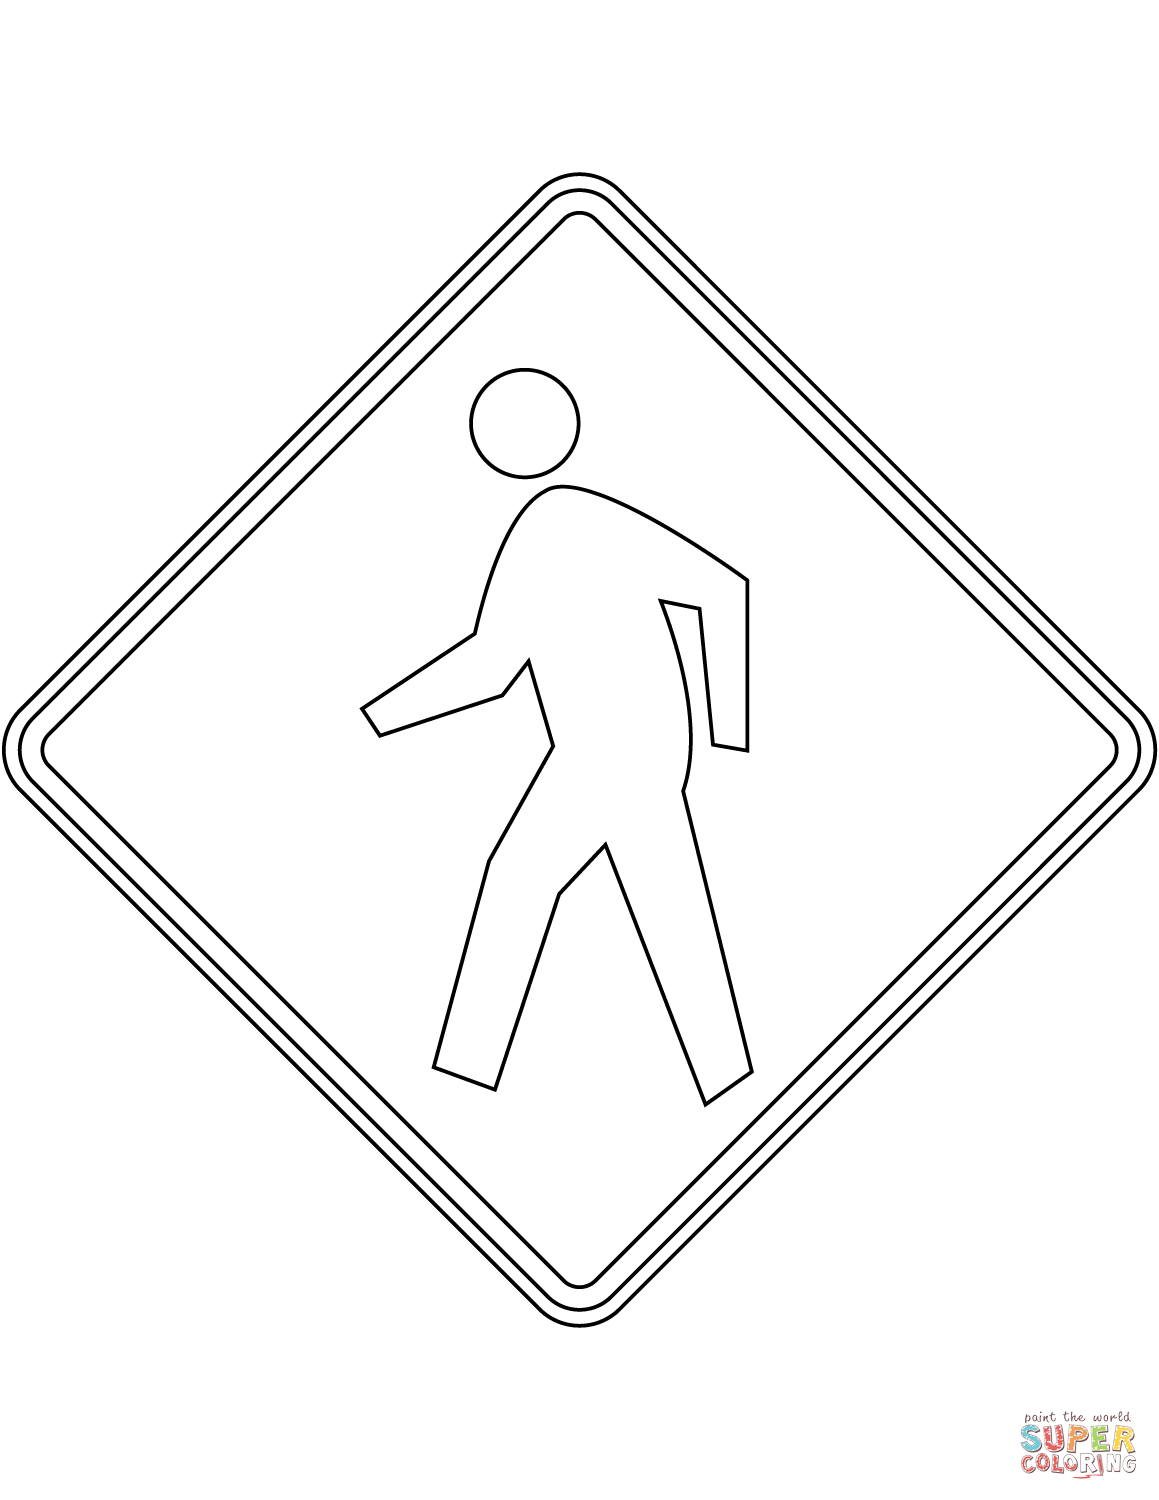 coloring printable road signs image of train signs highway rail grade crossing advance printable road signs coloring